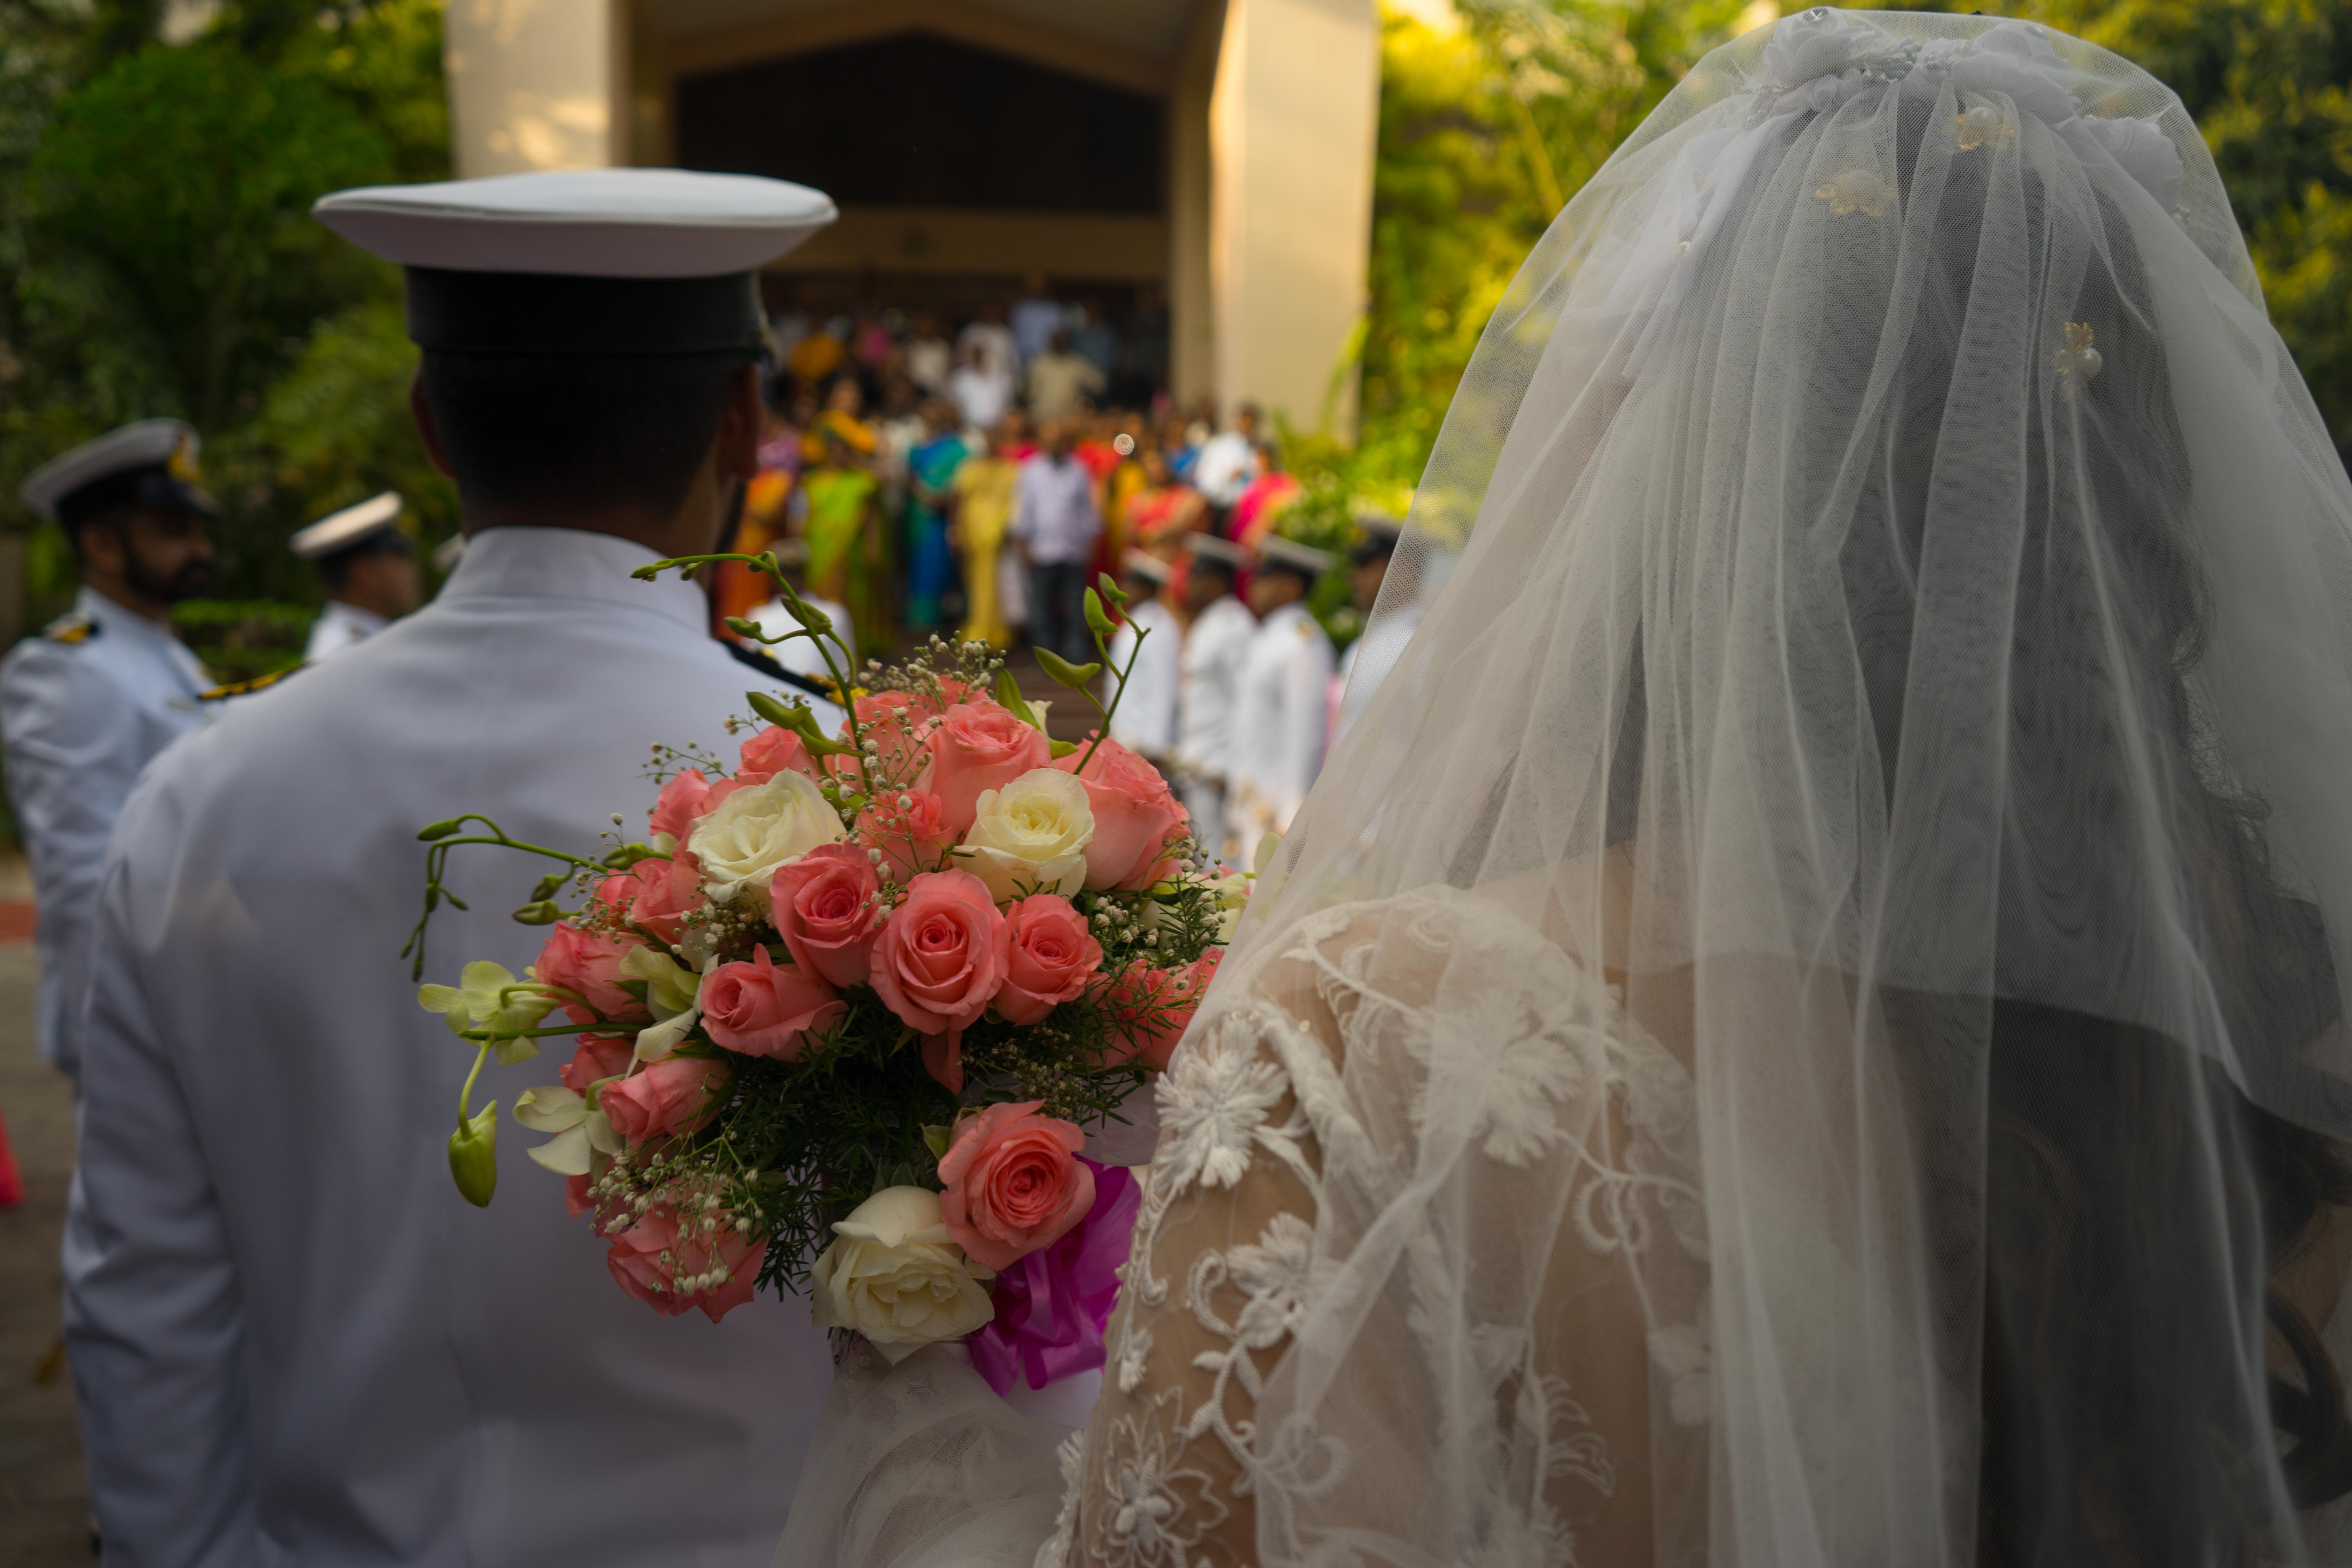 A bride walking with flowers in her hand behind the groom